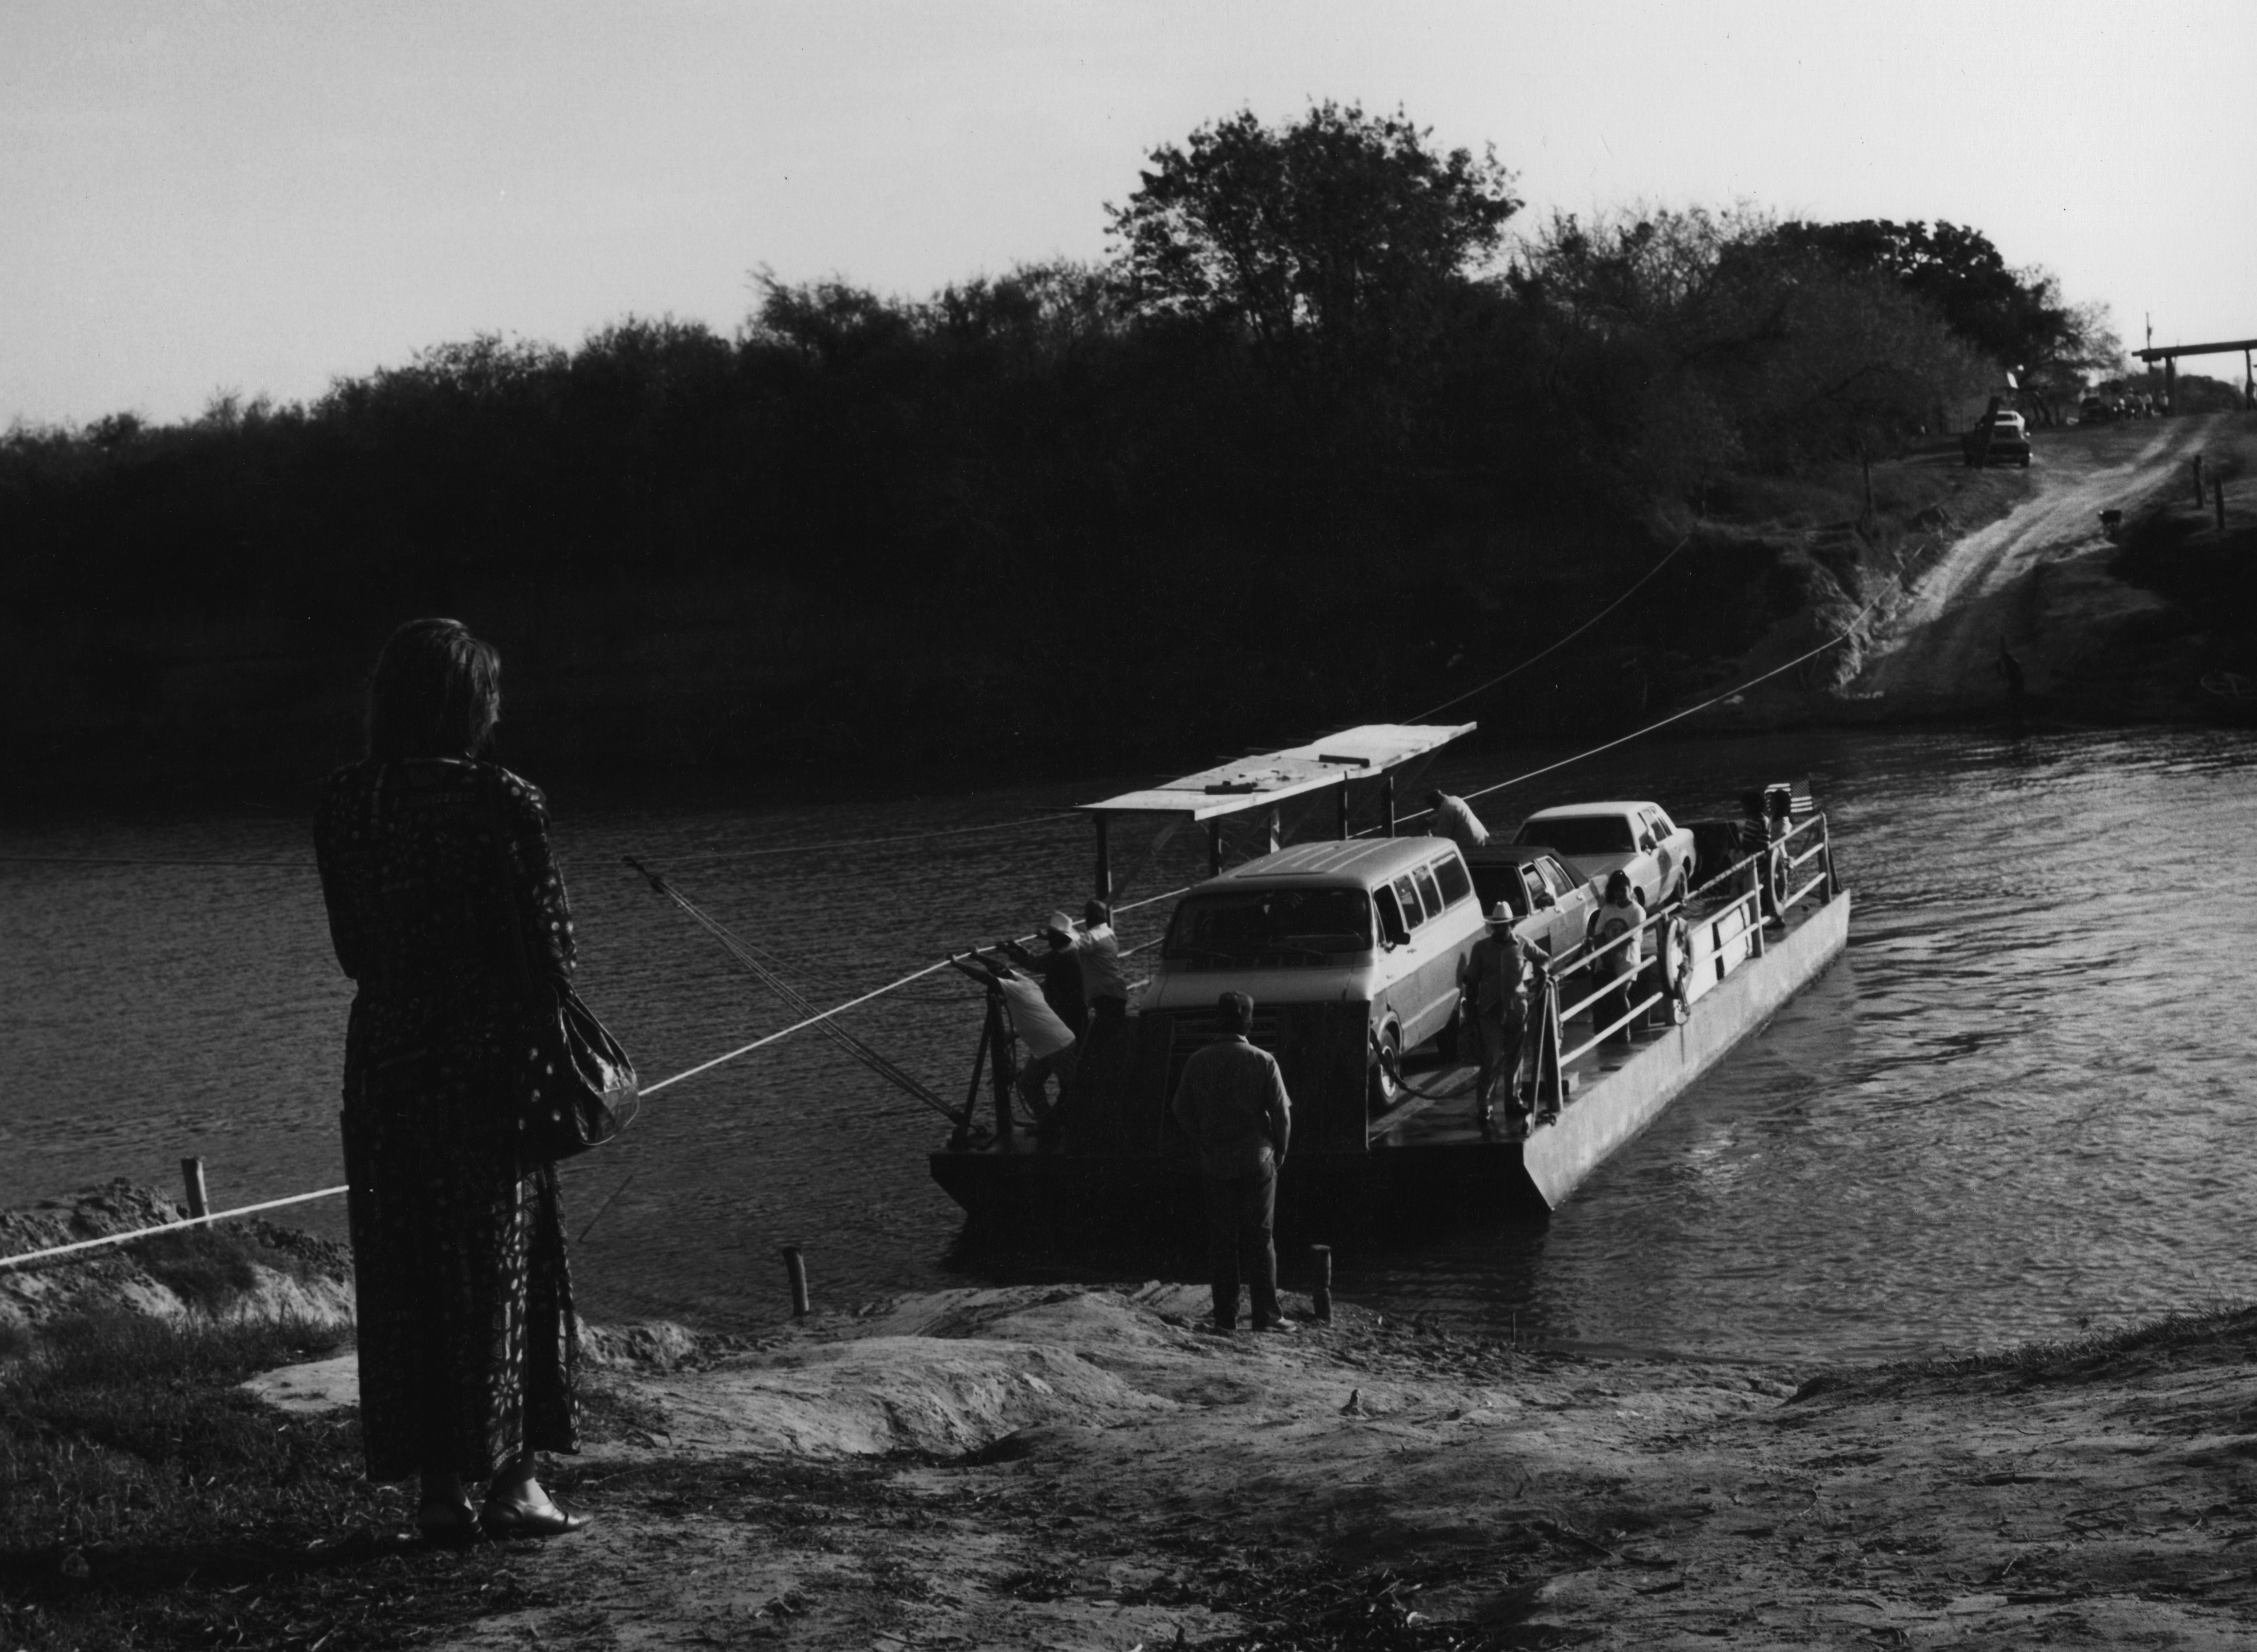 A woman seen from behind watches a group of men in a hand operated ferry cross a river